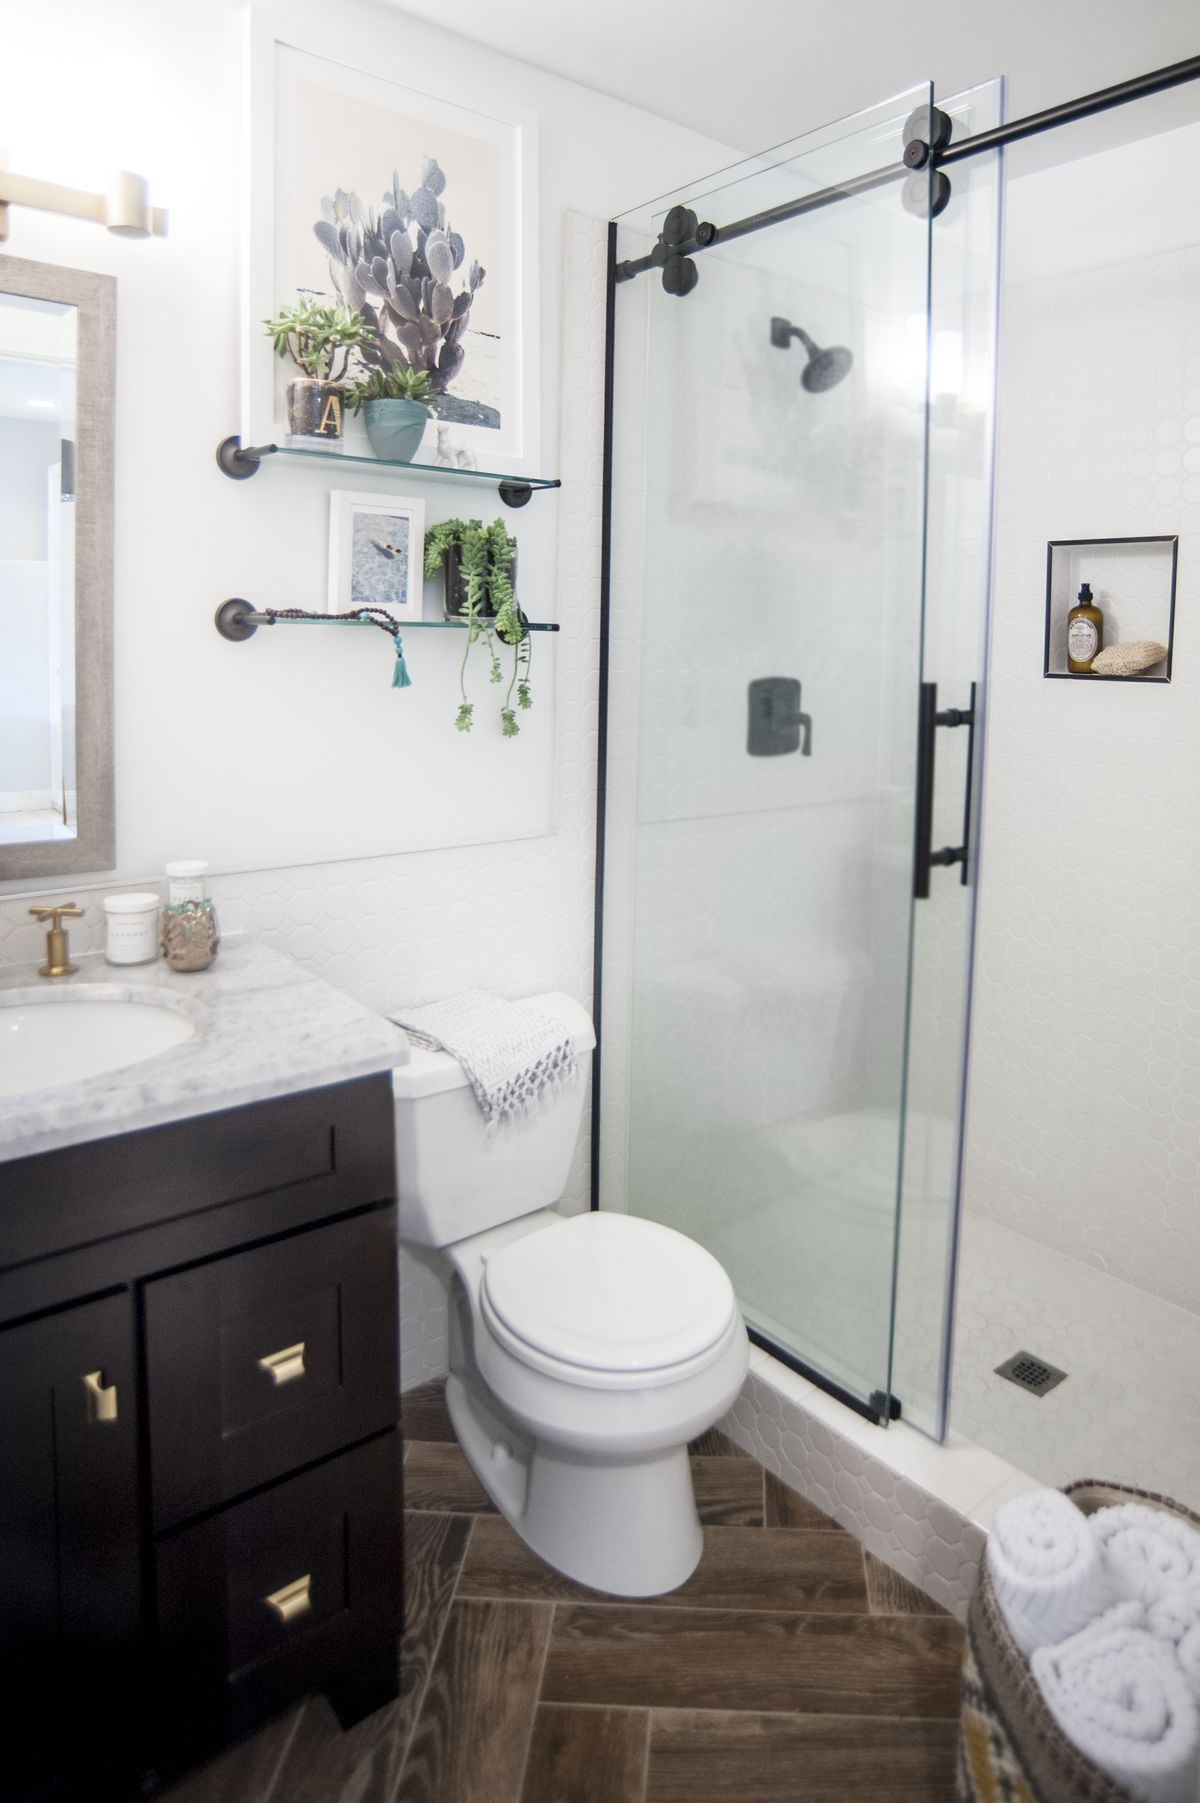 This Bathroom Renovation Tip Will Save You Time And Money Small Bathroom Renovations Bathroom Remodel Master Bathroom Makeover